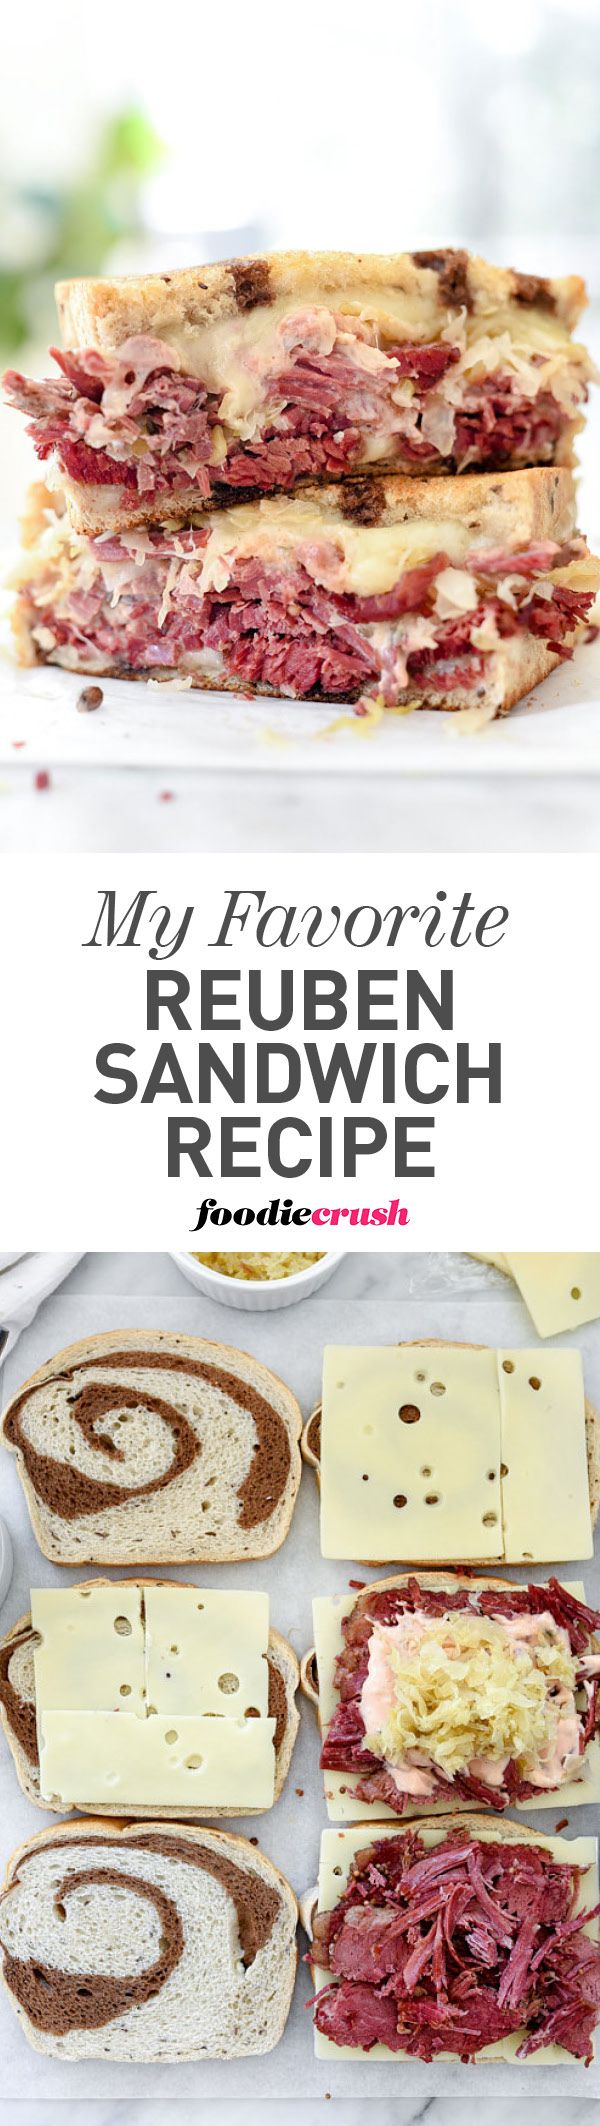 My Favorite Reuben Sandwich Corned Beef